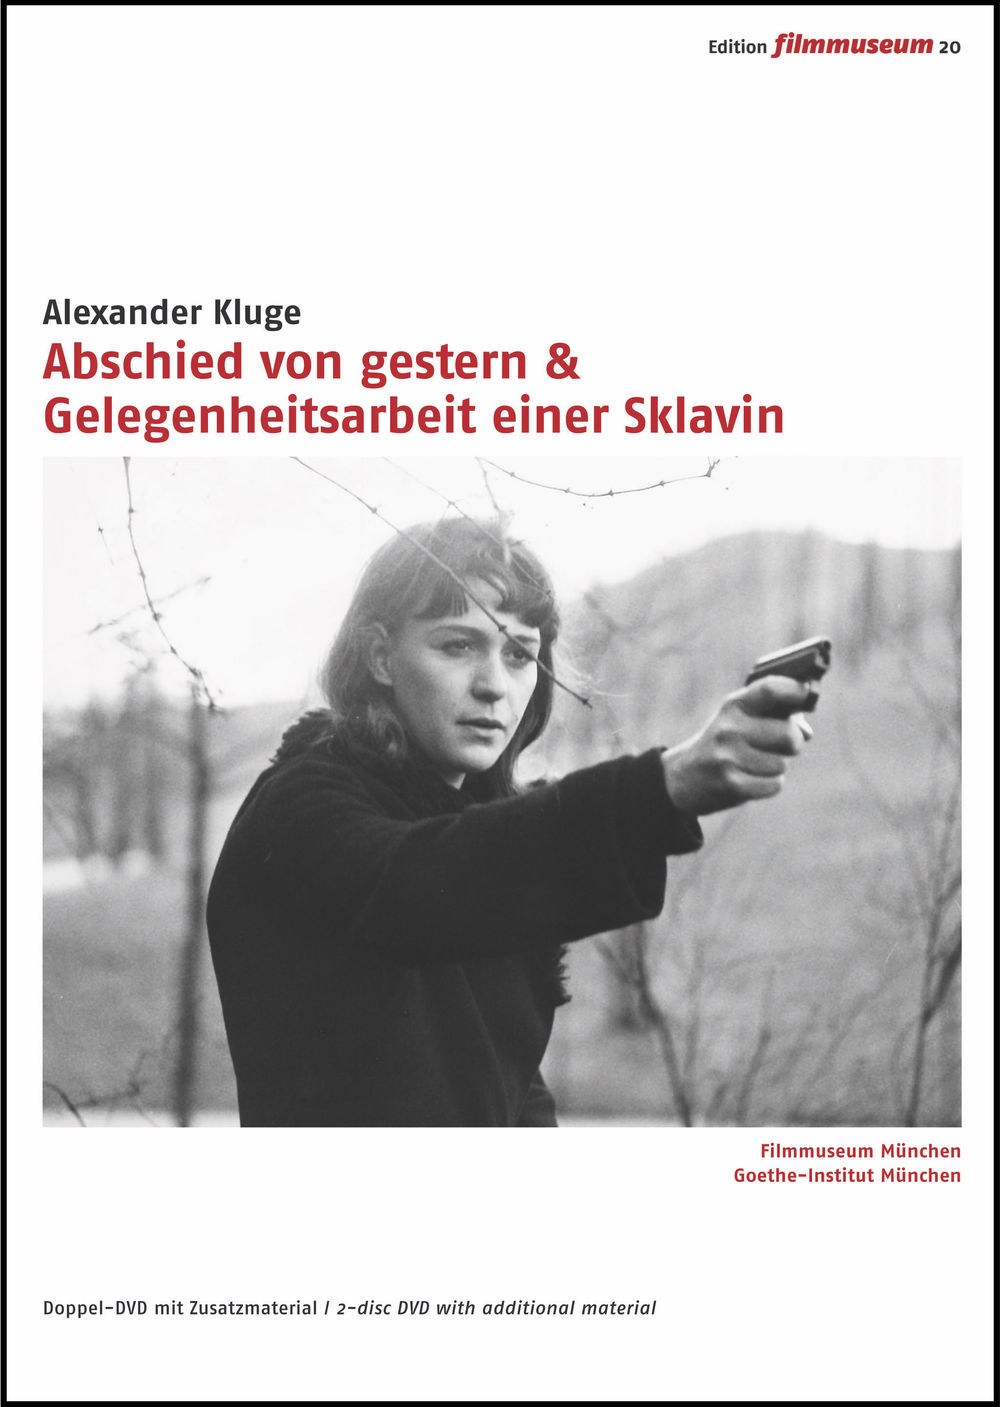 Willow+Springs+Tag+der+Idioten+cover-3.jpg